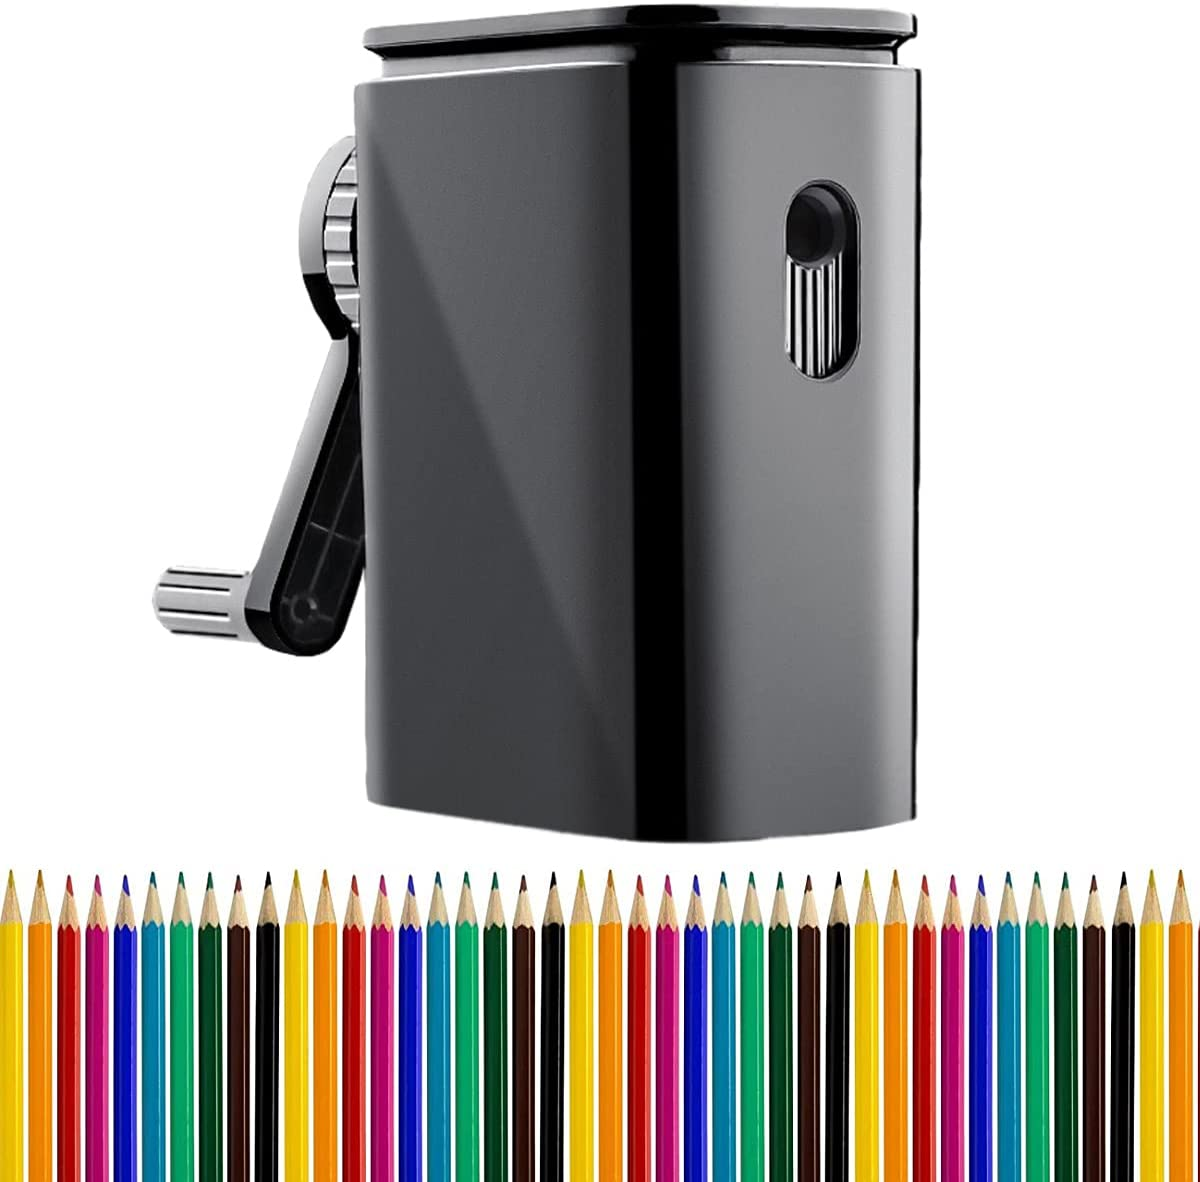 KUMADAI Special price for a limited time Pencil Sharpener Manual Ultra-Cheap Deals for Kids Colored Pencils 6-8mm